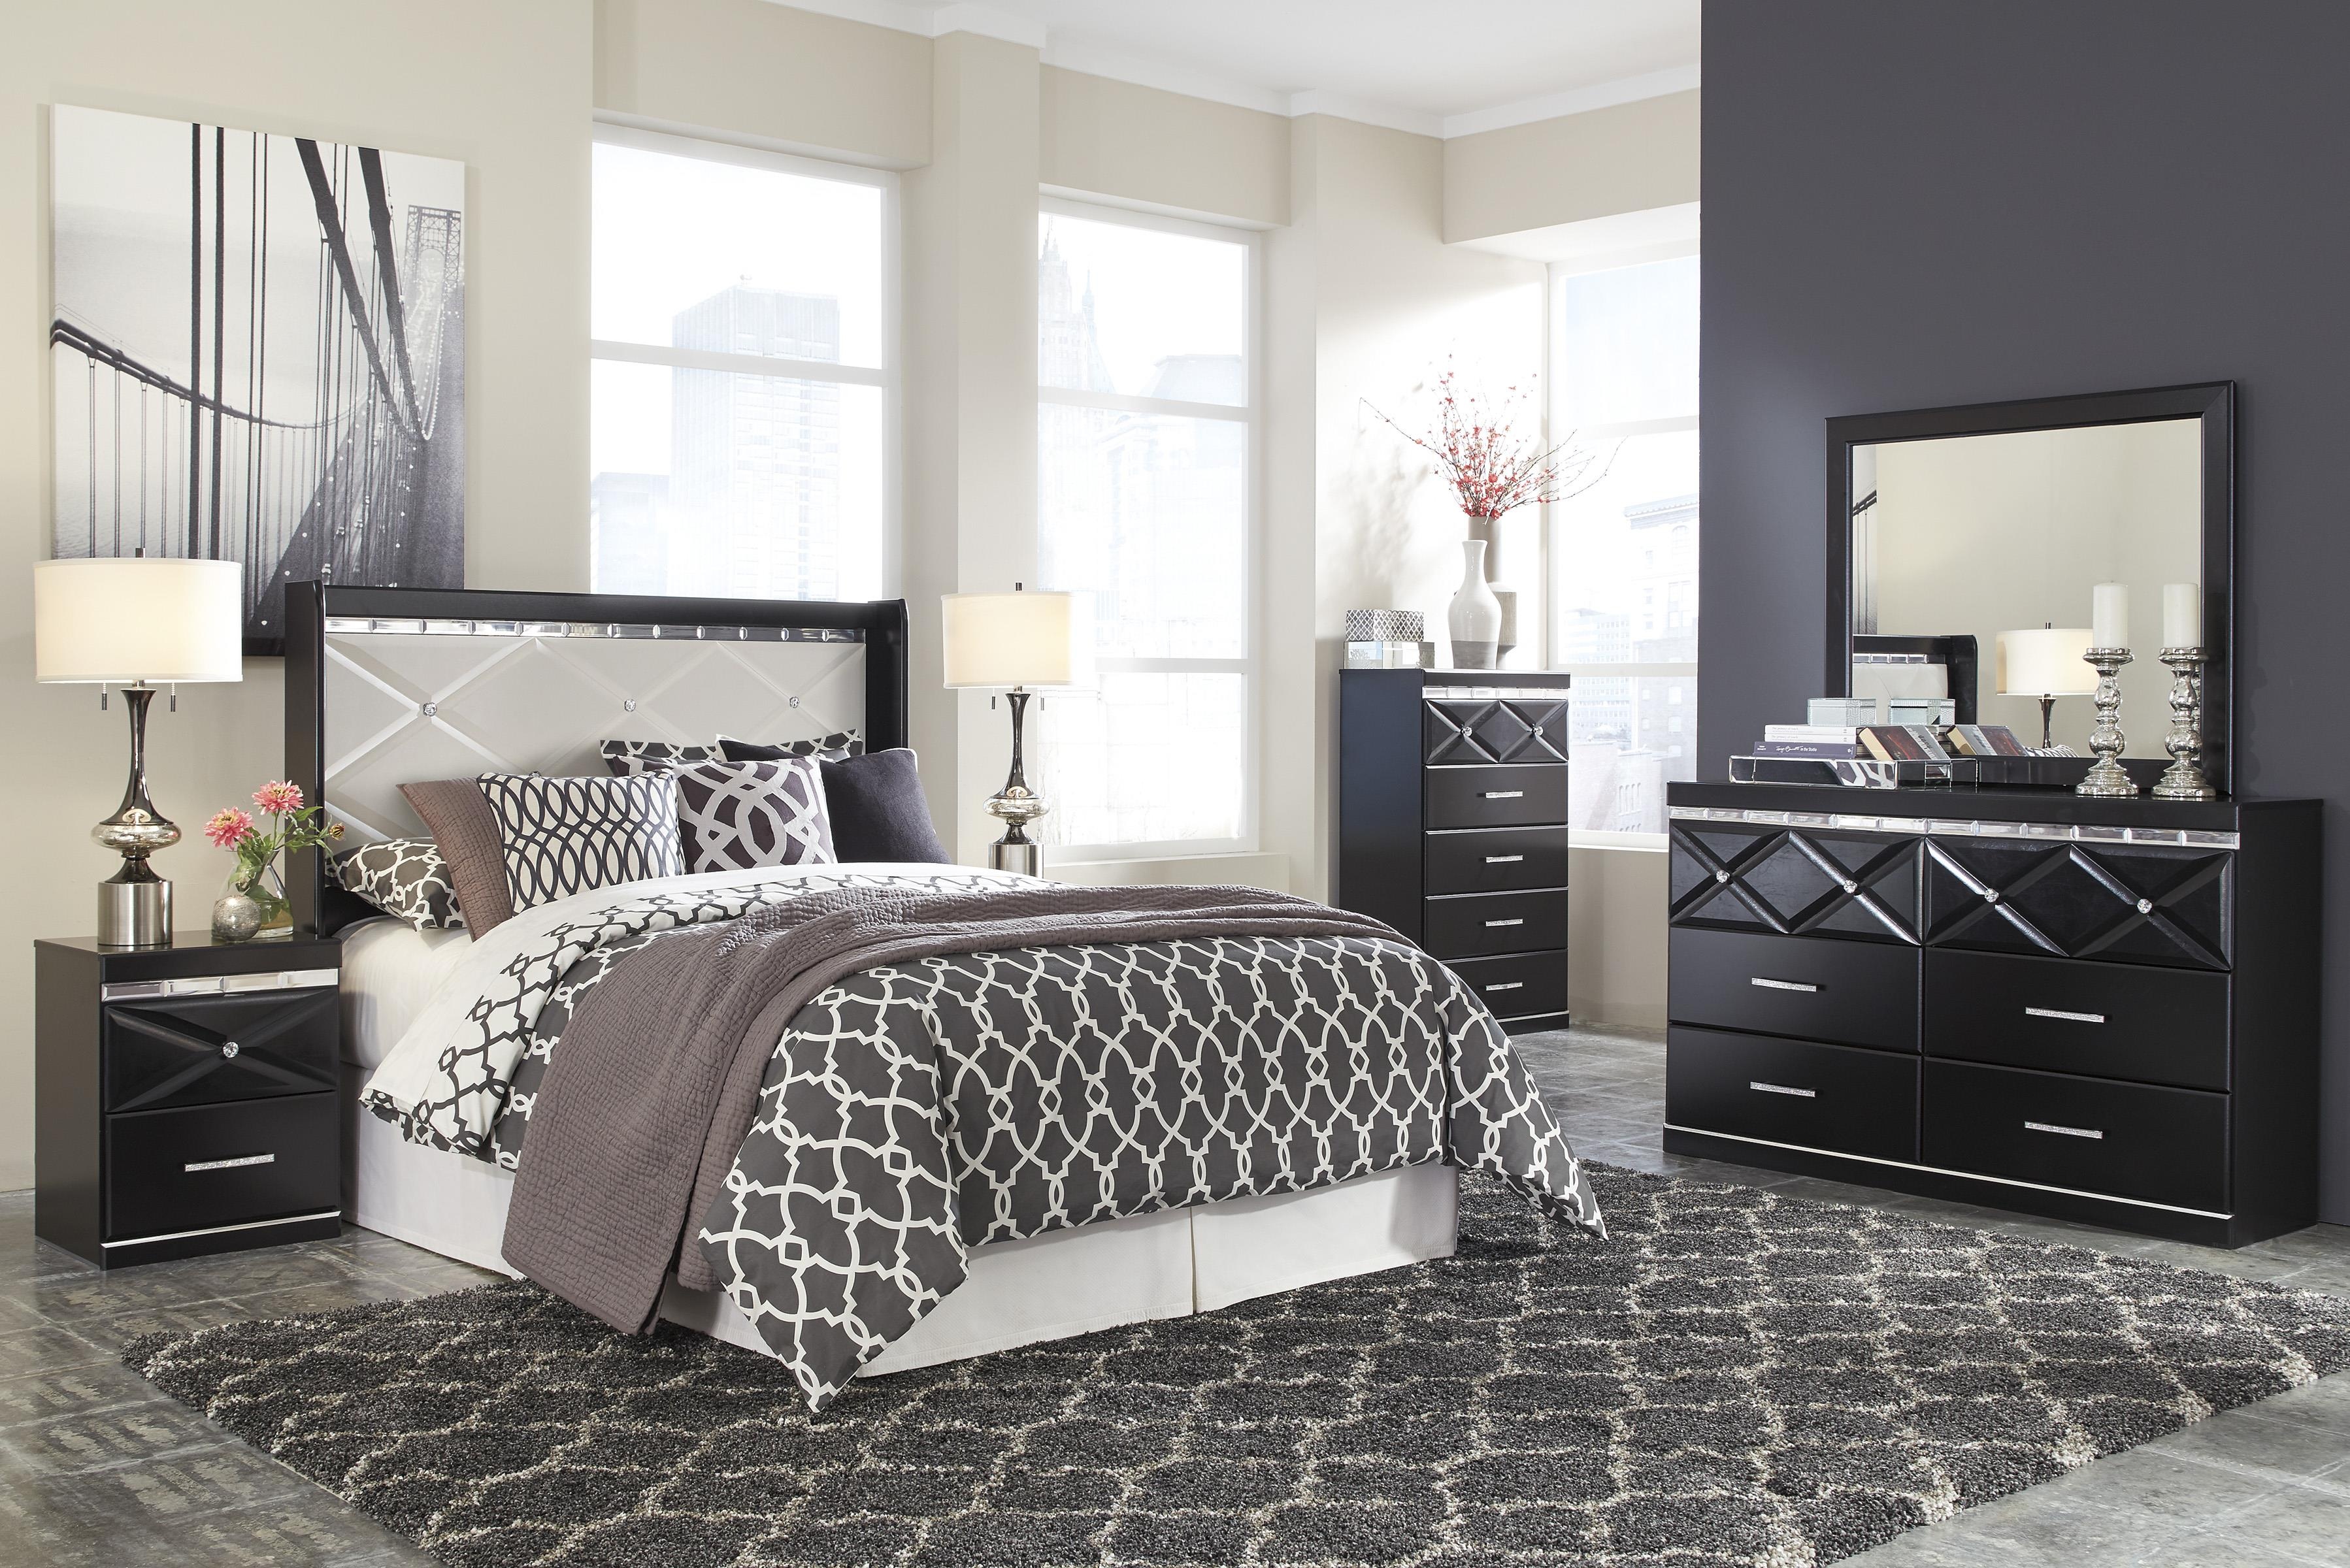 Queen Panel Headboard with Faux Crystals by Signature Design by Ashley : Wolf and Gardiner Wolf ...